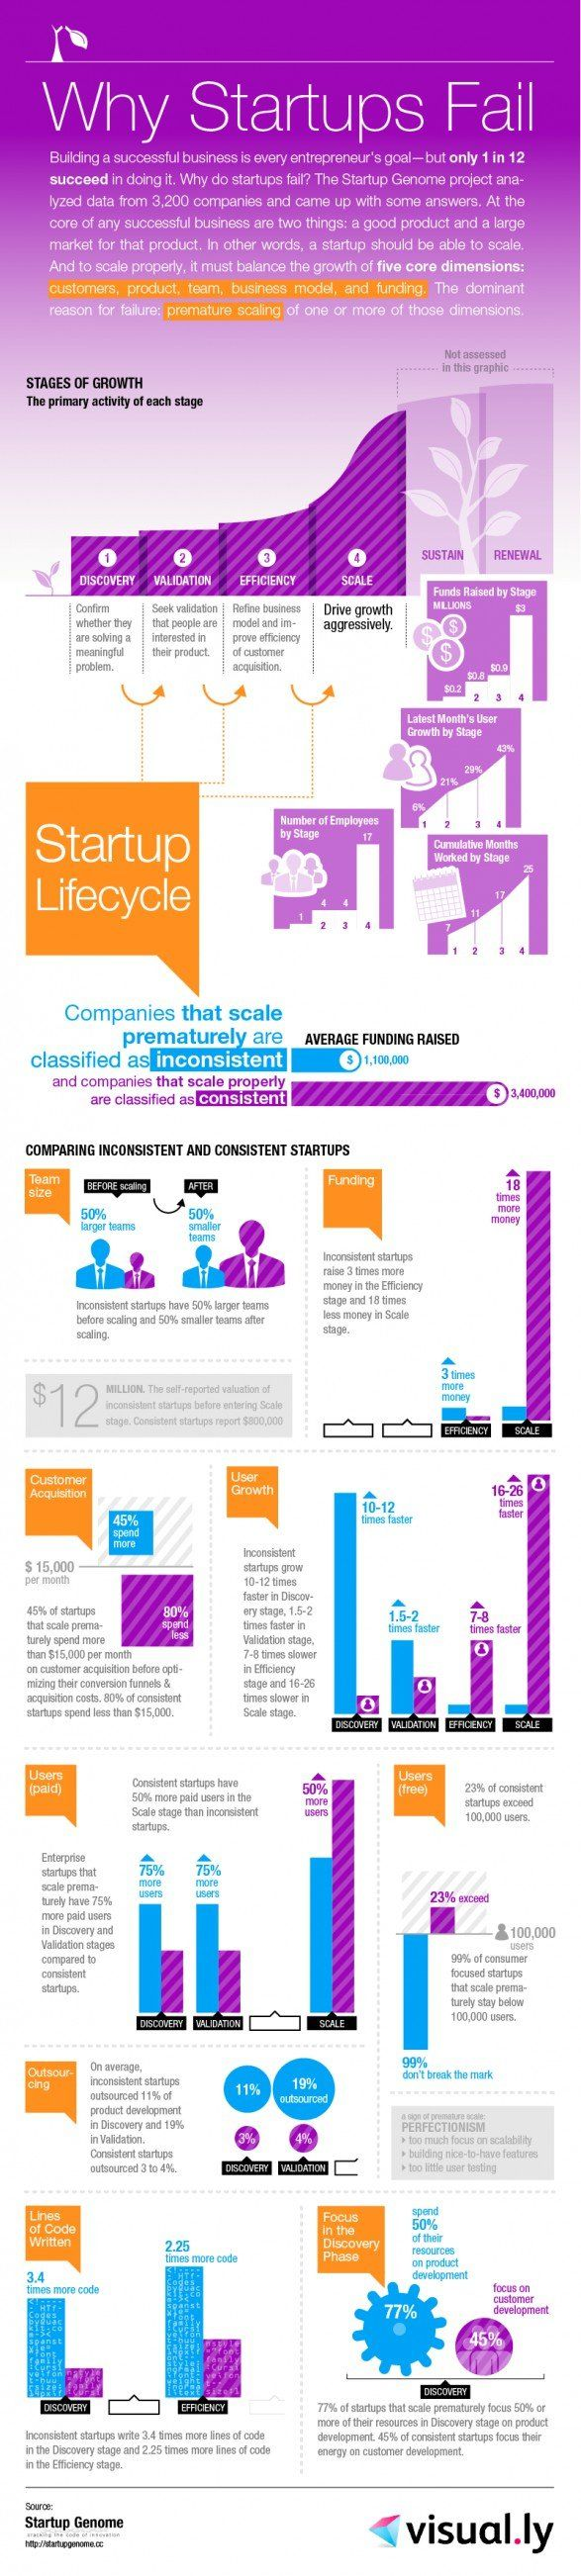 Startup Genome Project infographic